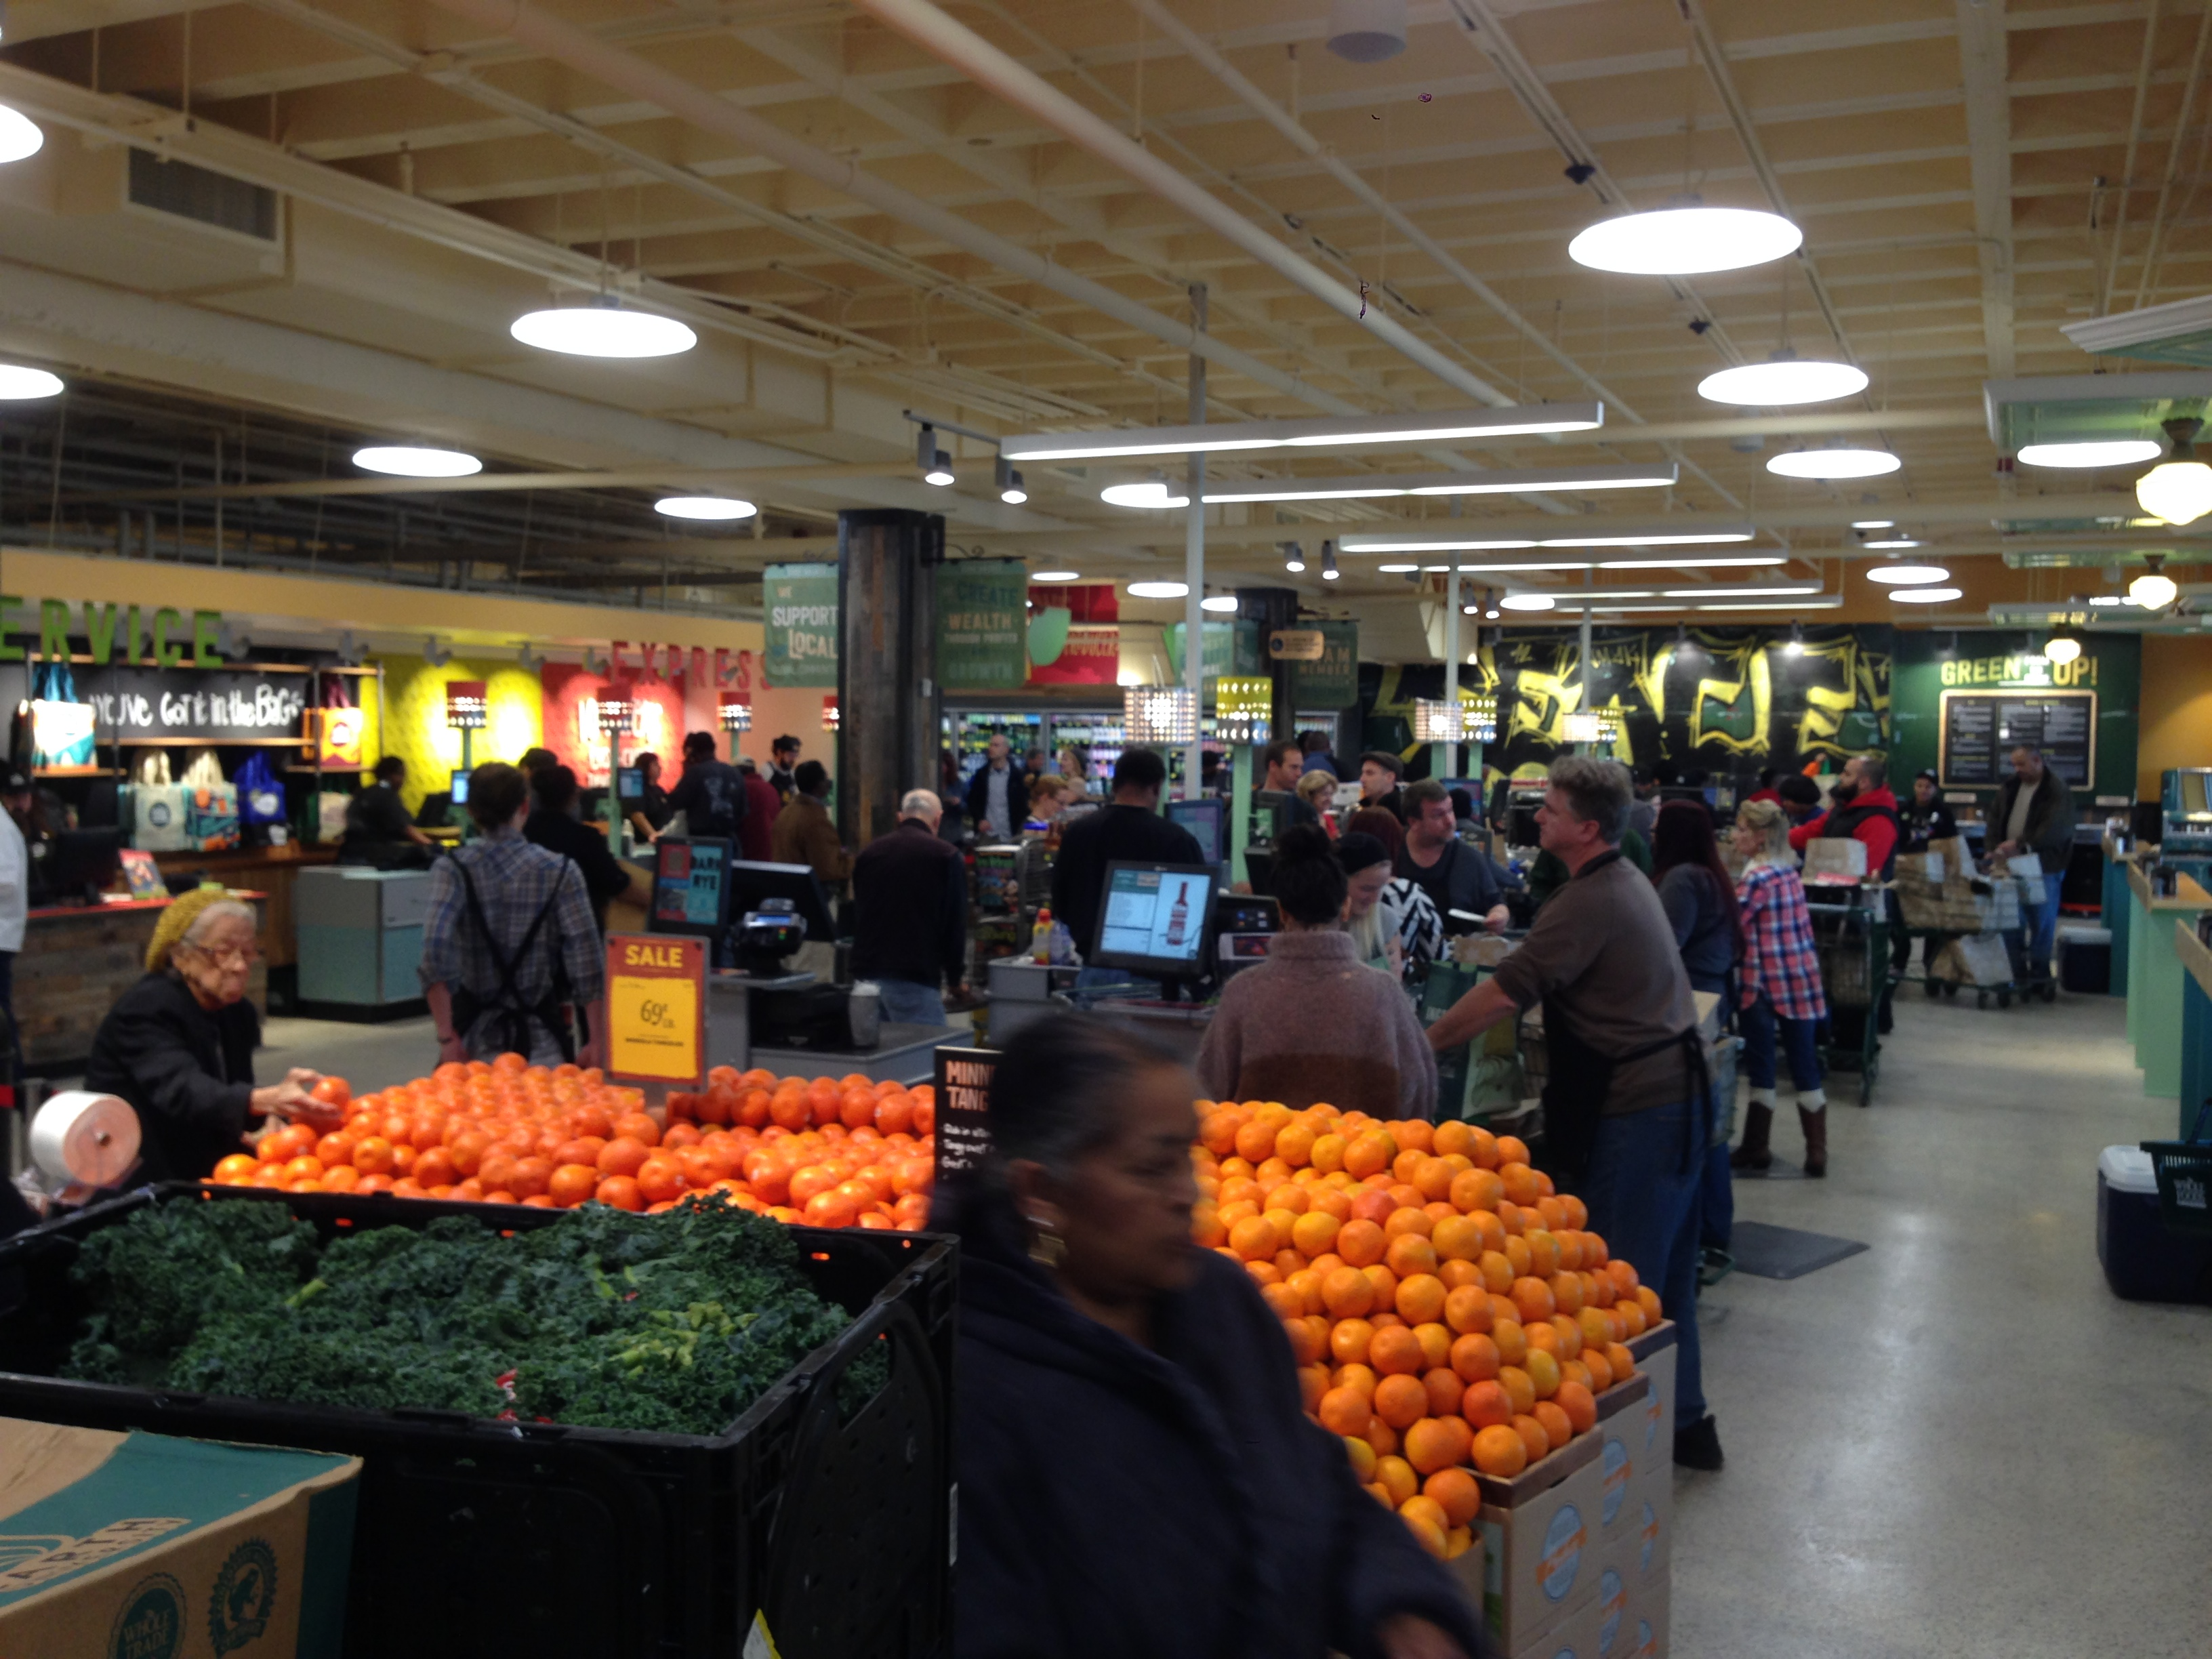 Produce displays and check-out stands at the new Whole Foods Market.